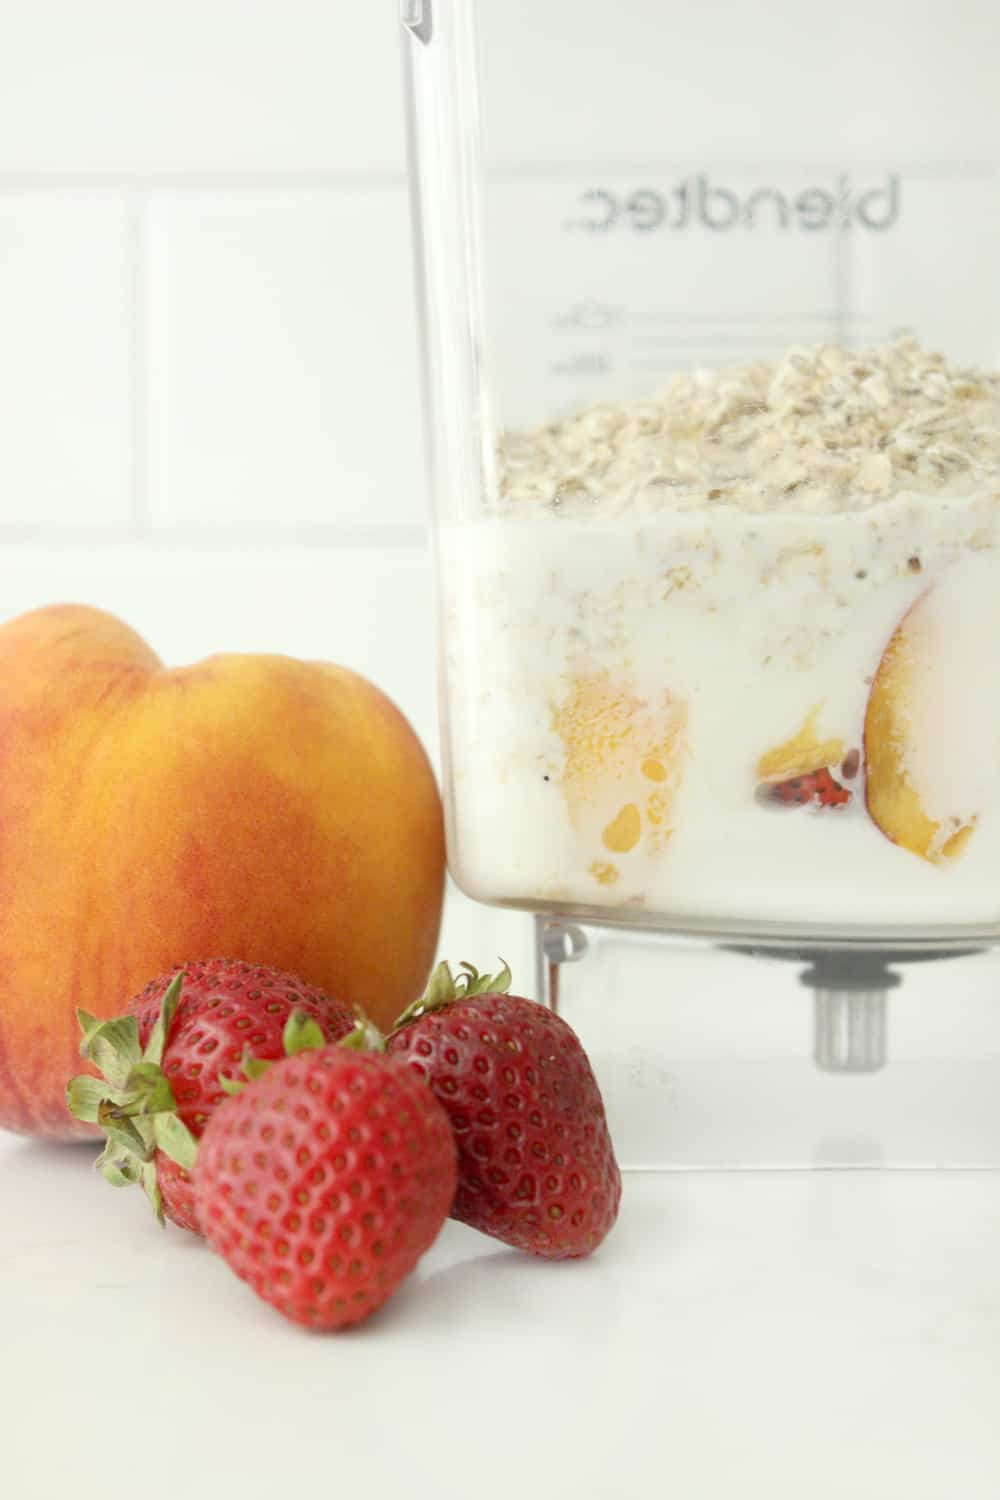 ingredients for a strawberry peach smoothie shown in the blendtec